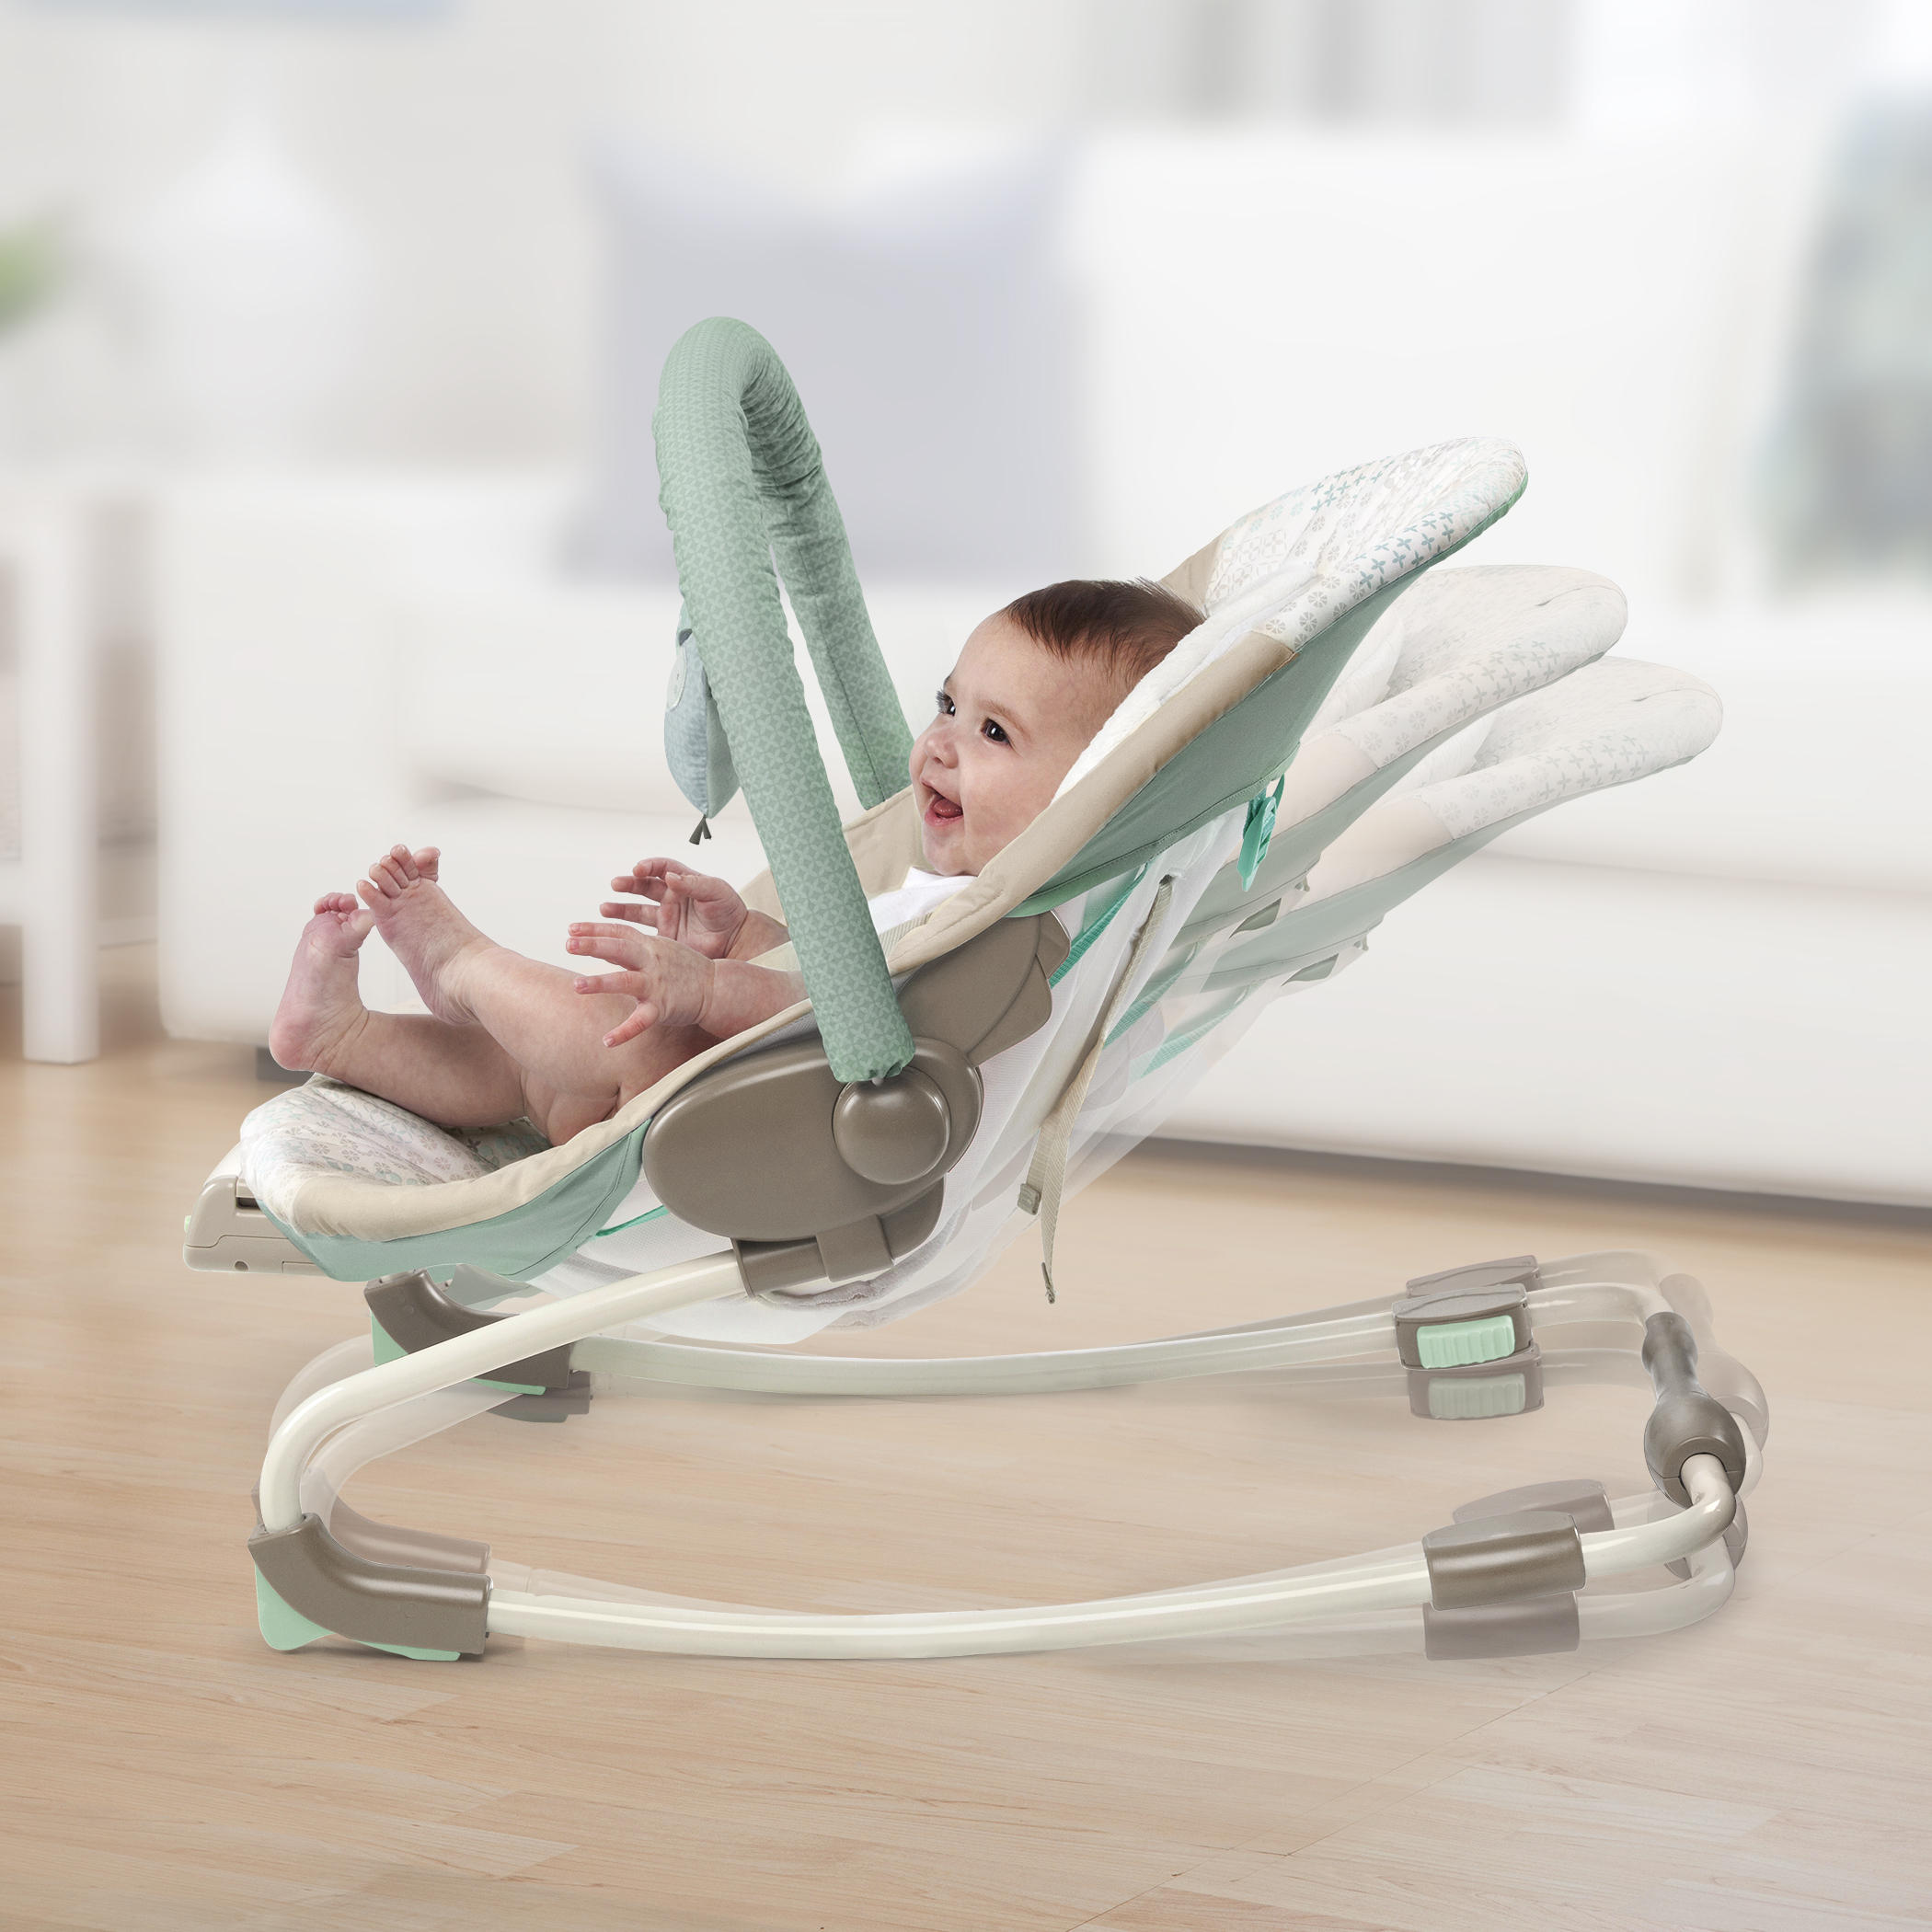 InJoy Infant Rocking Seat